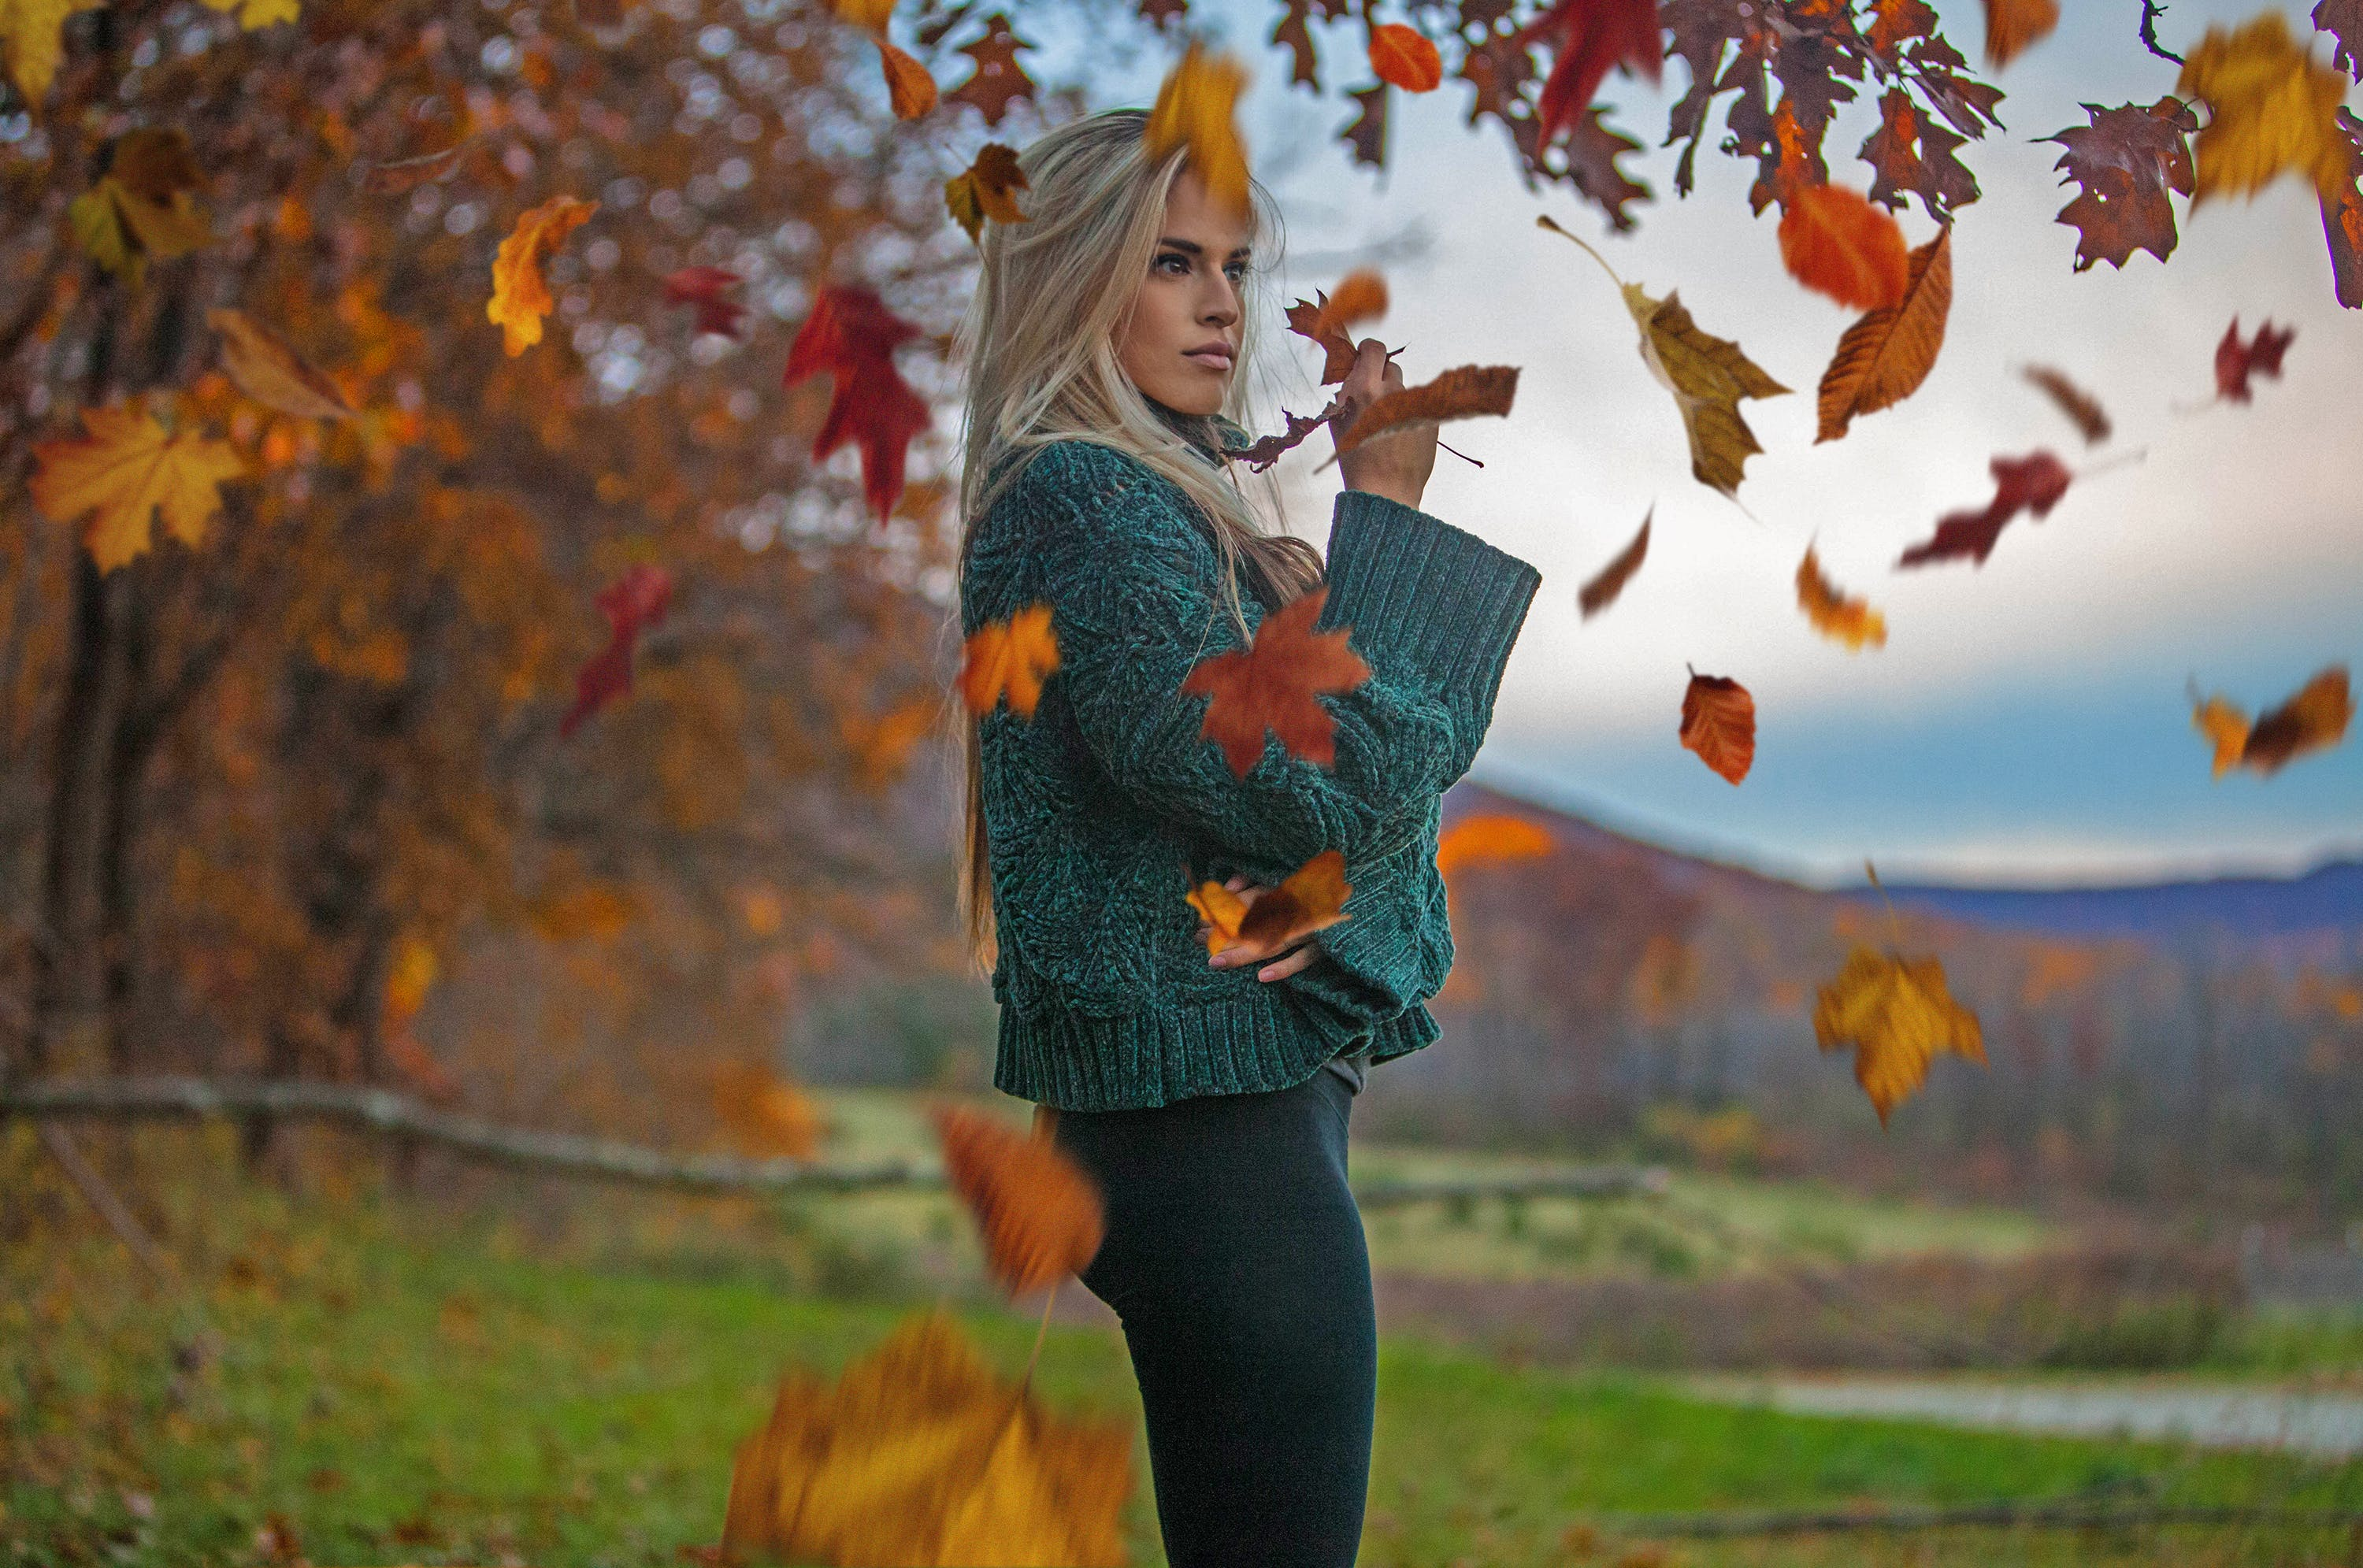 Woman In Teal Knit Sweater Under Maple Tree